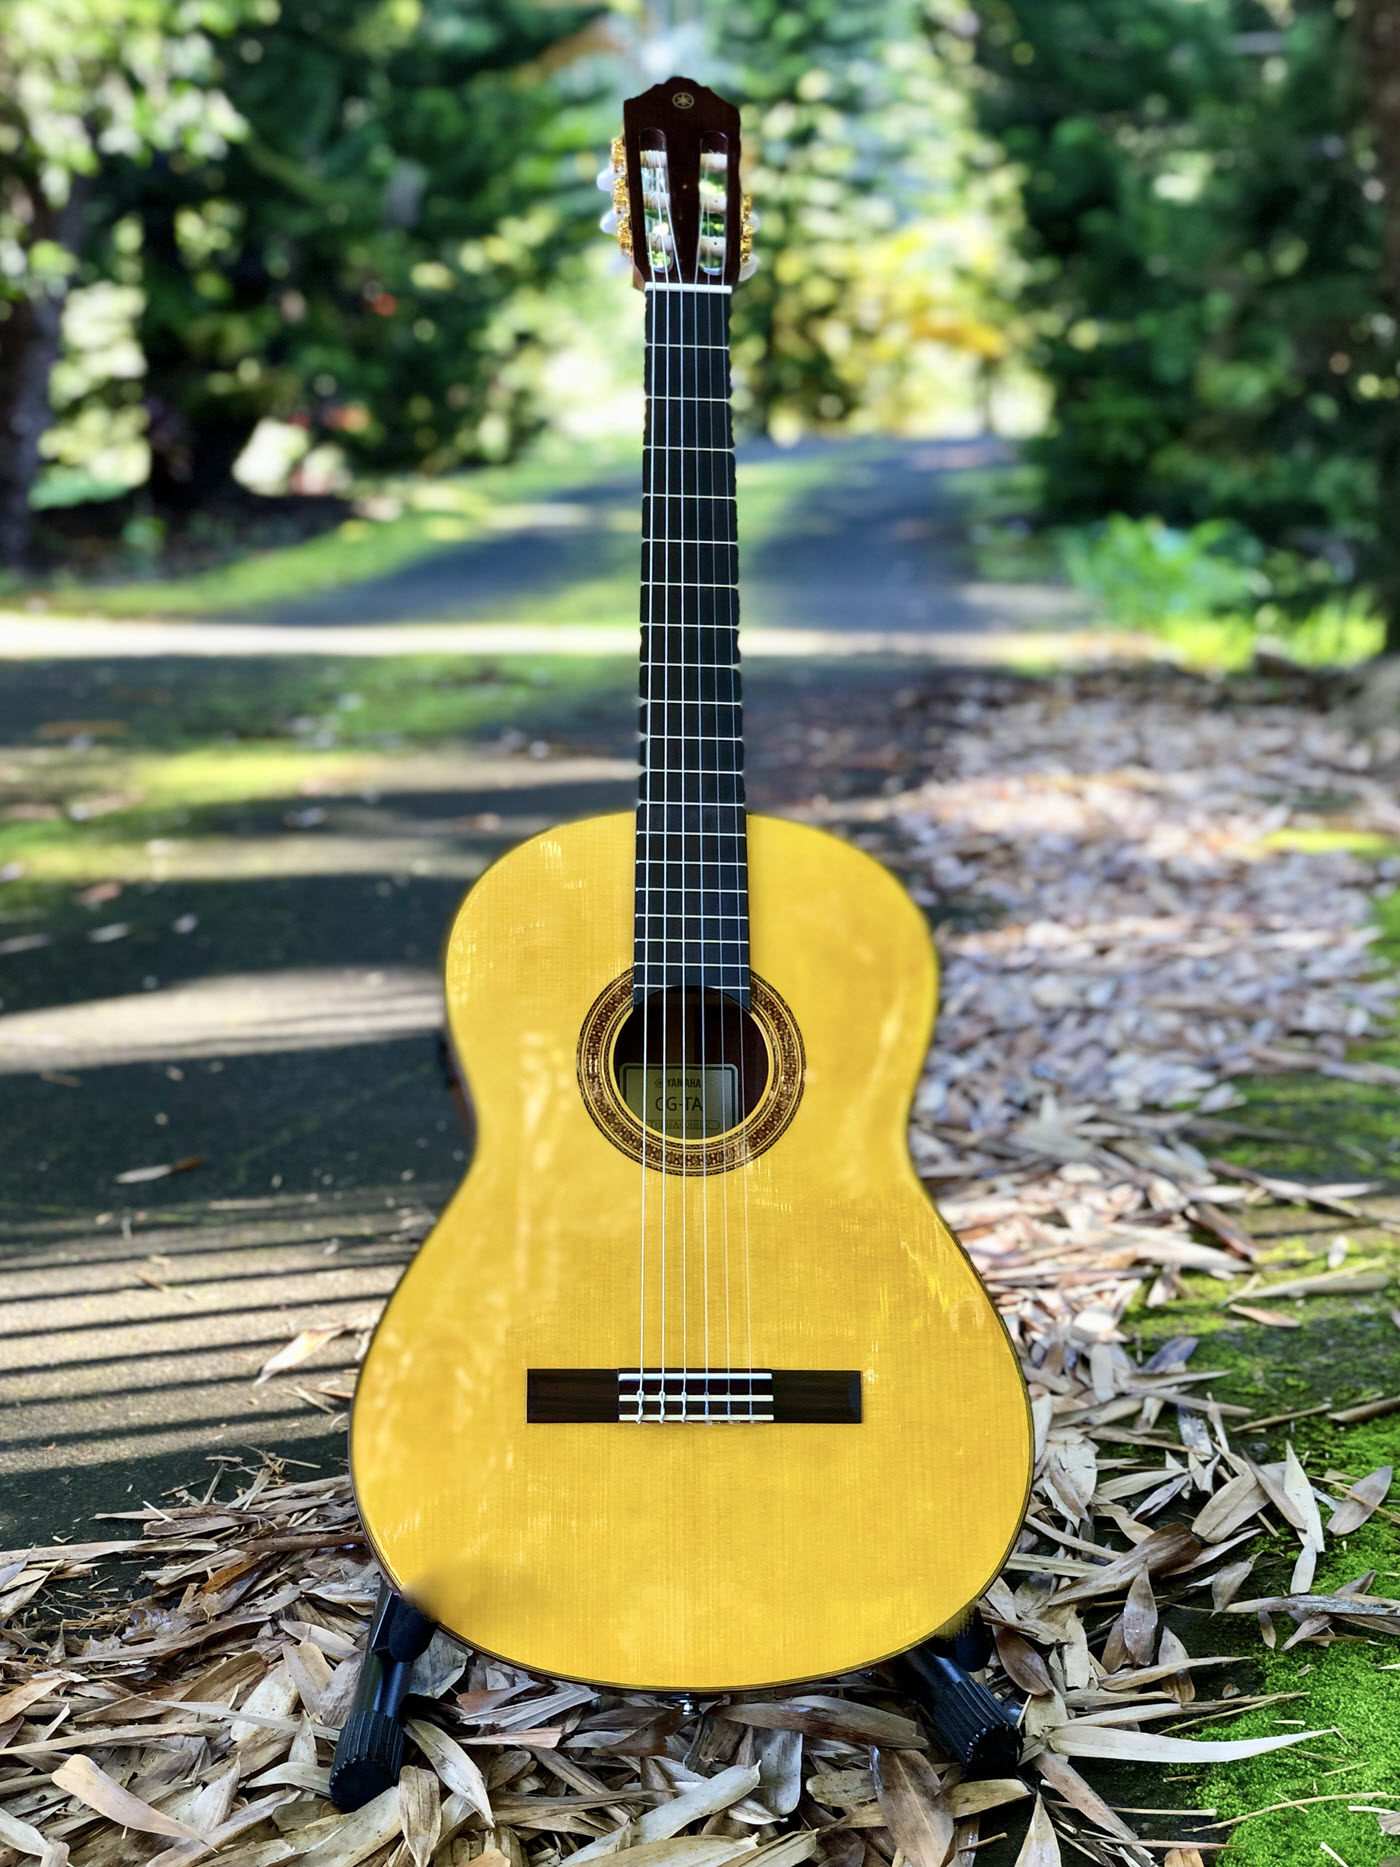 Acoustic guitar in a park setting.